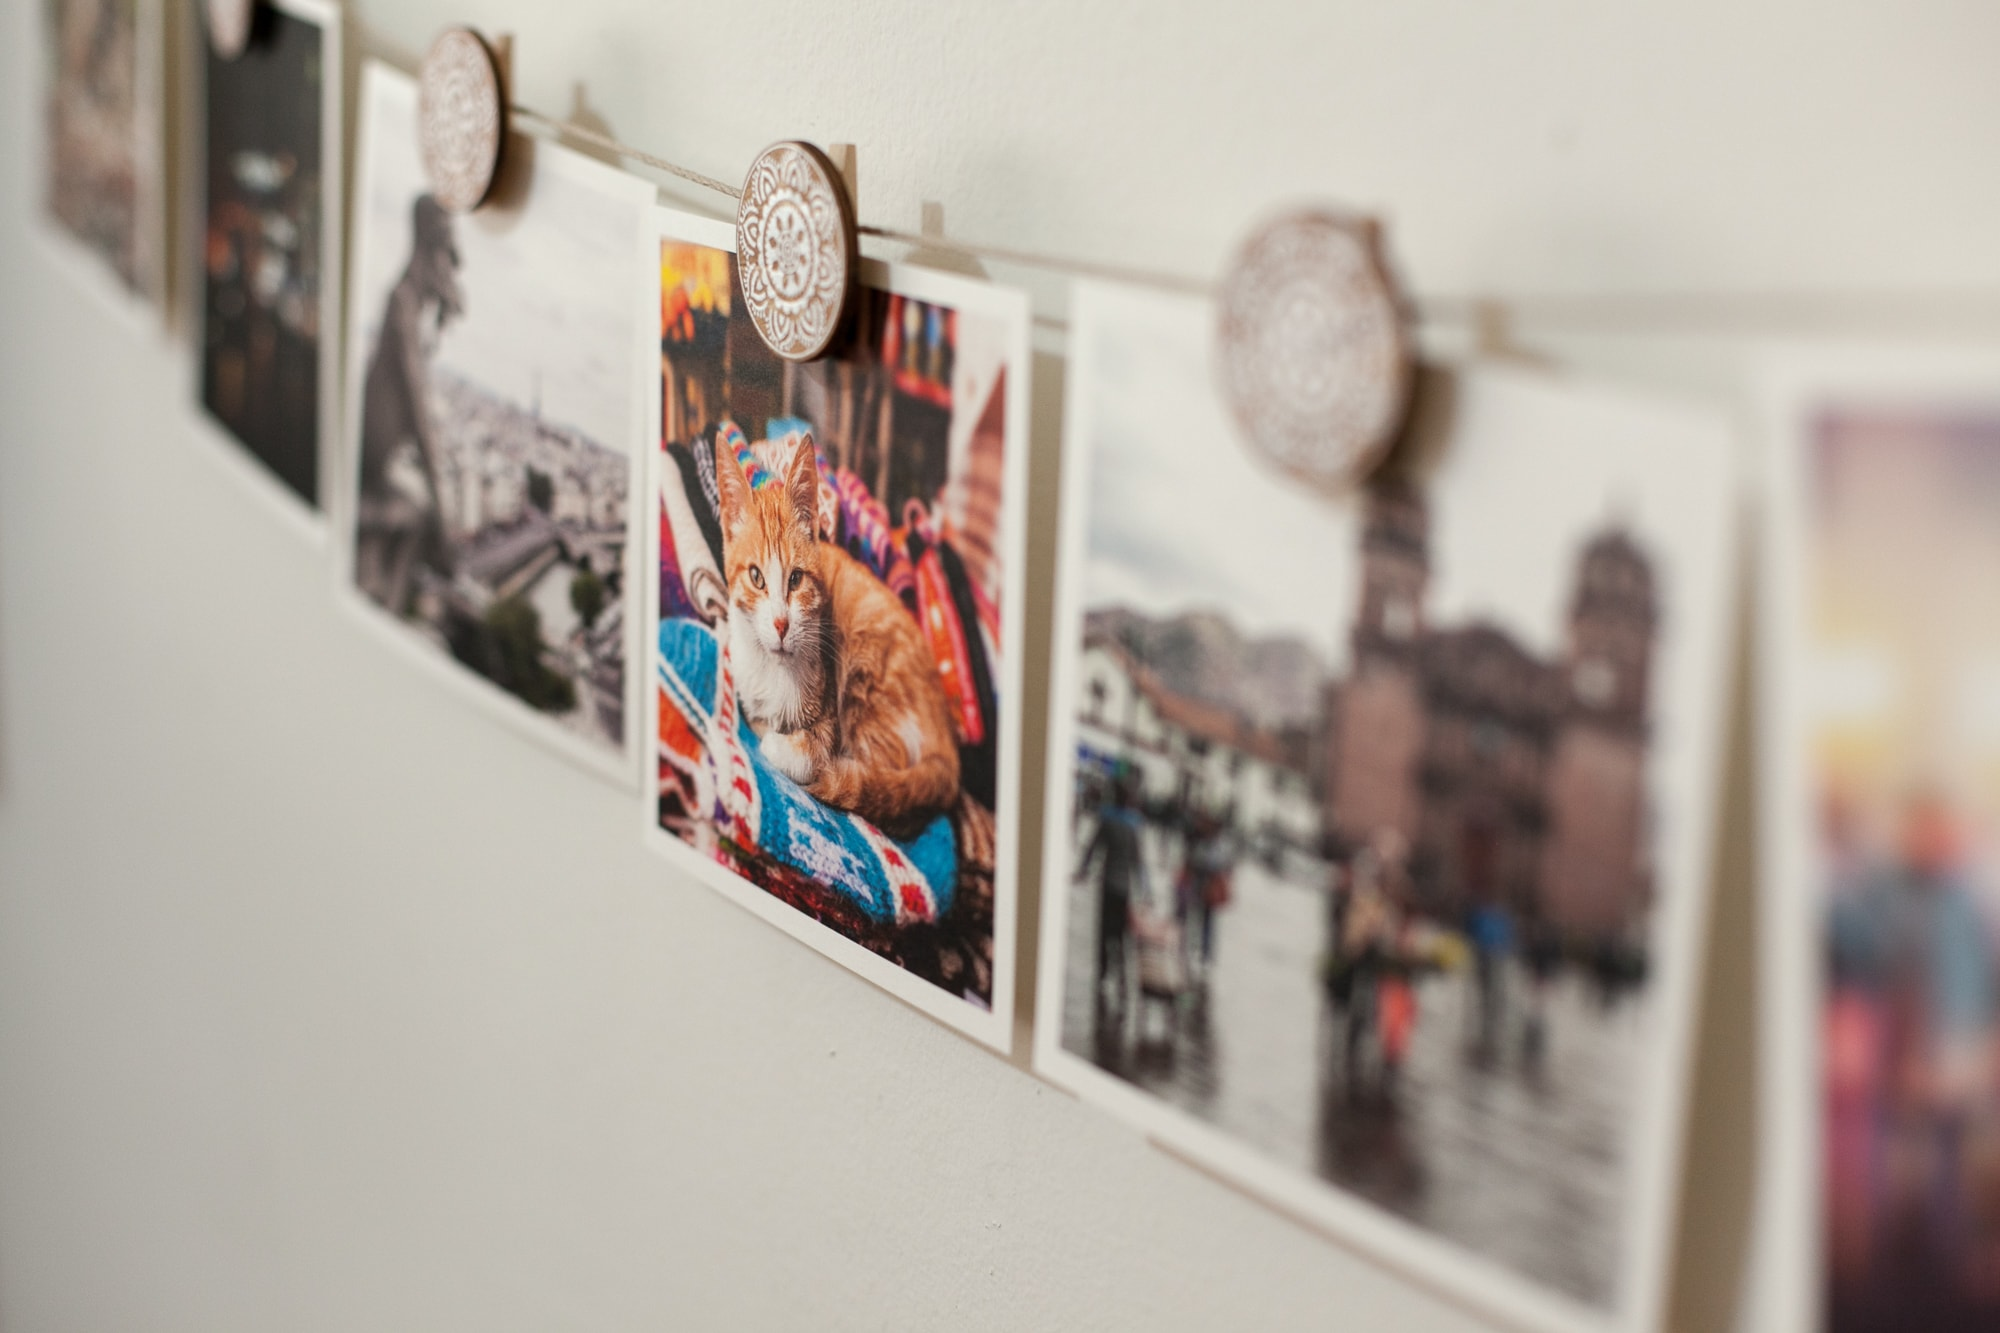 Wall of Travel Photos - Artifact Uprising square prints of travel photos hanging from Urban Outfitters Henna Medallion Photo Clip Set.